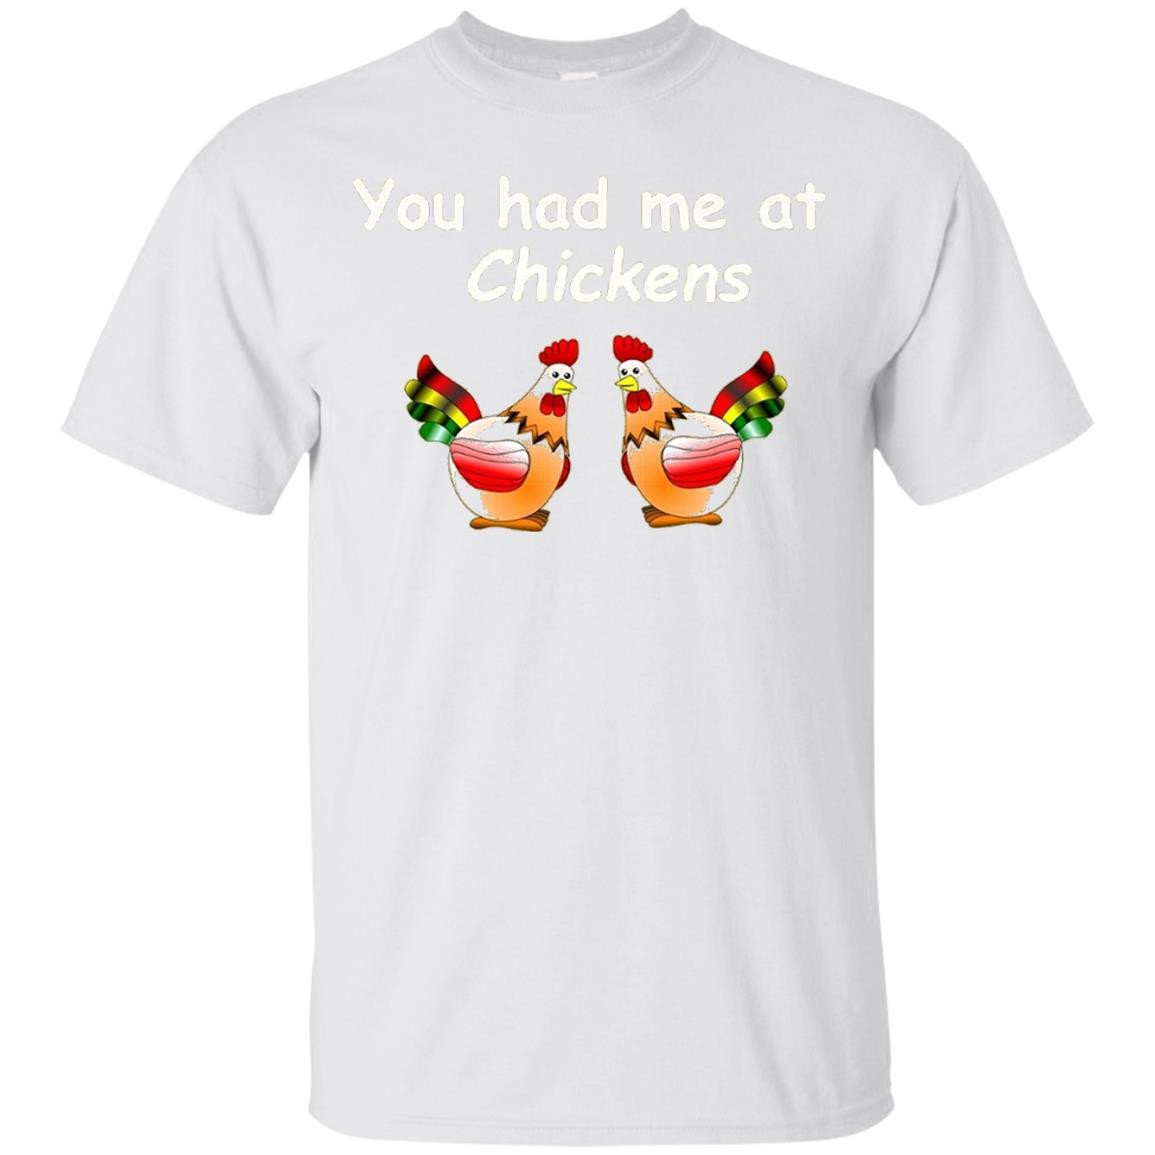 You had me at Chickens Tshirt Tee - T-Shirt